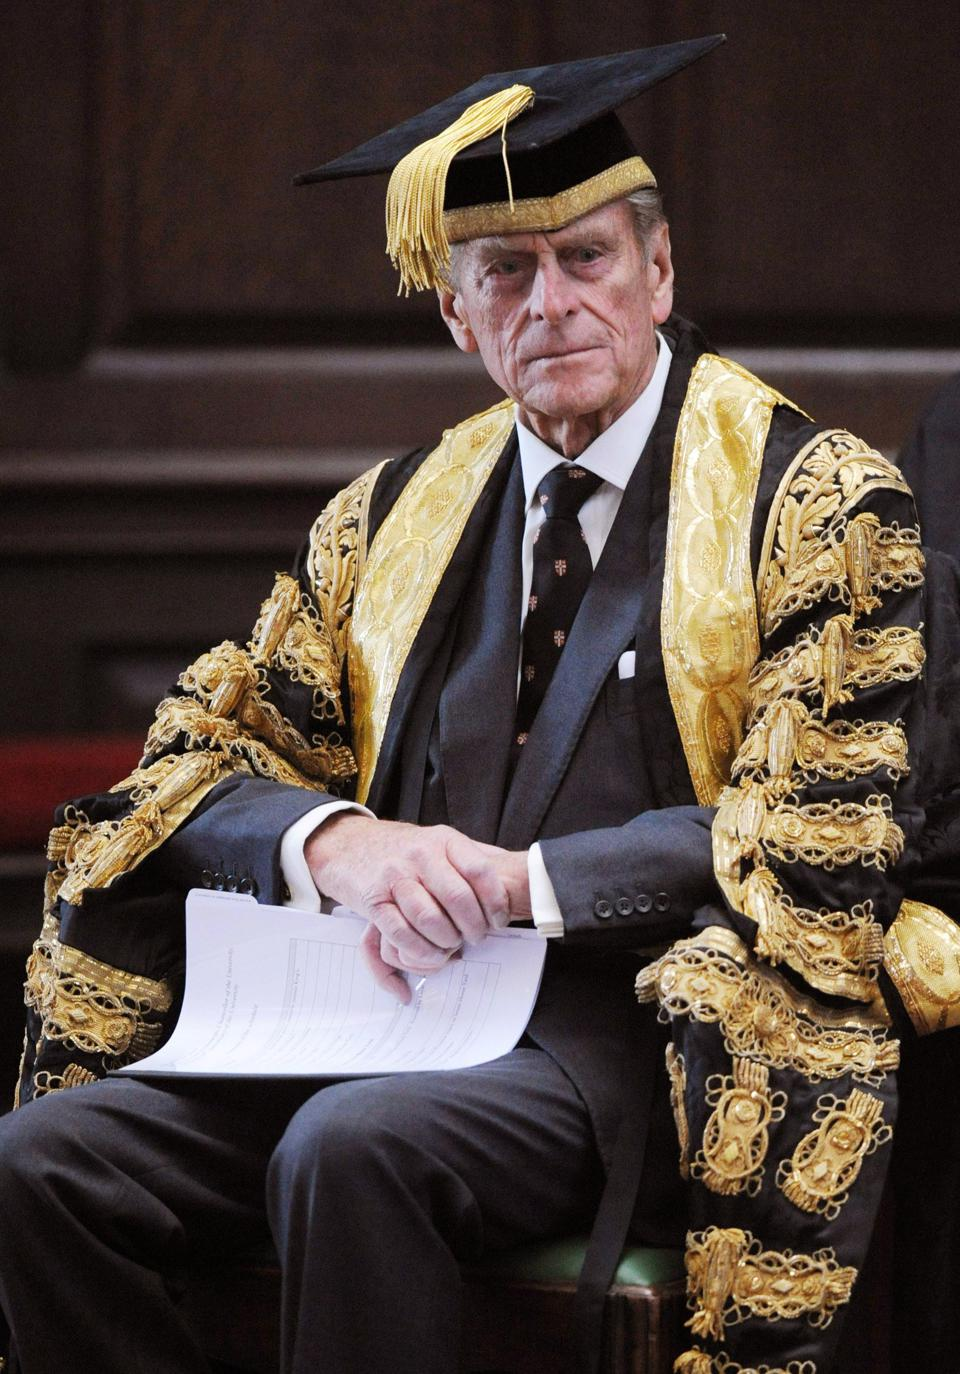 Prince Philip, Duke of Edinburgh as Chancellor of Cambridge University